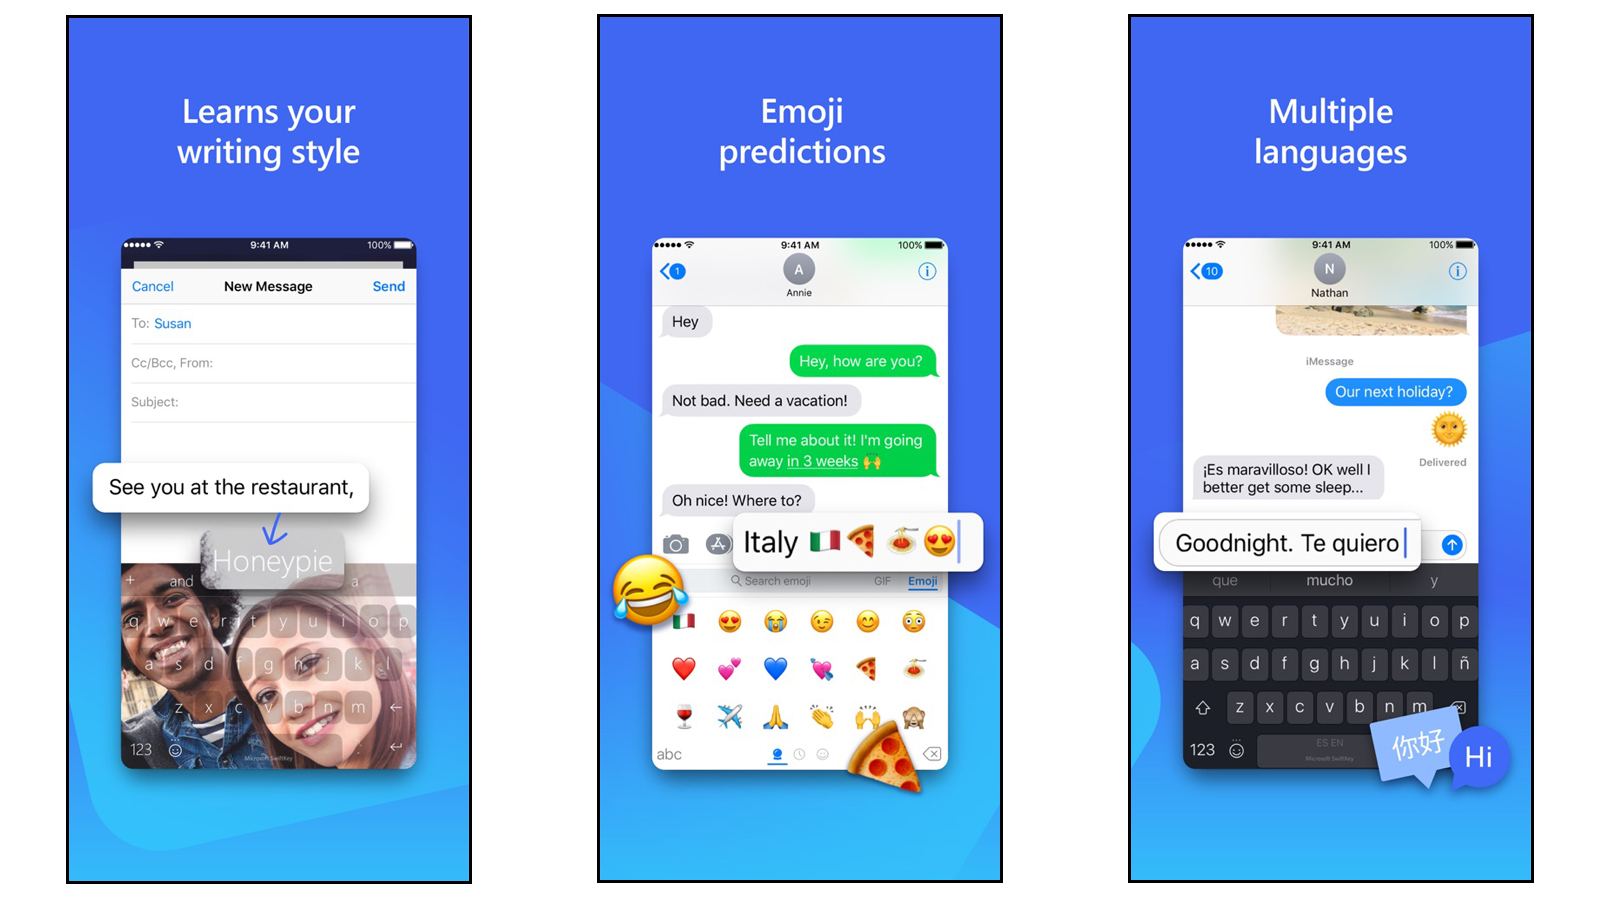 SwiftKey app for talking in different languages and using emoji